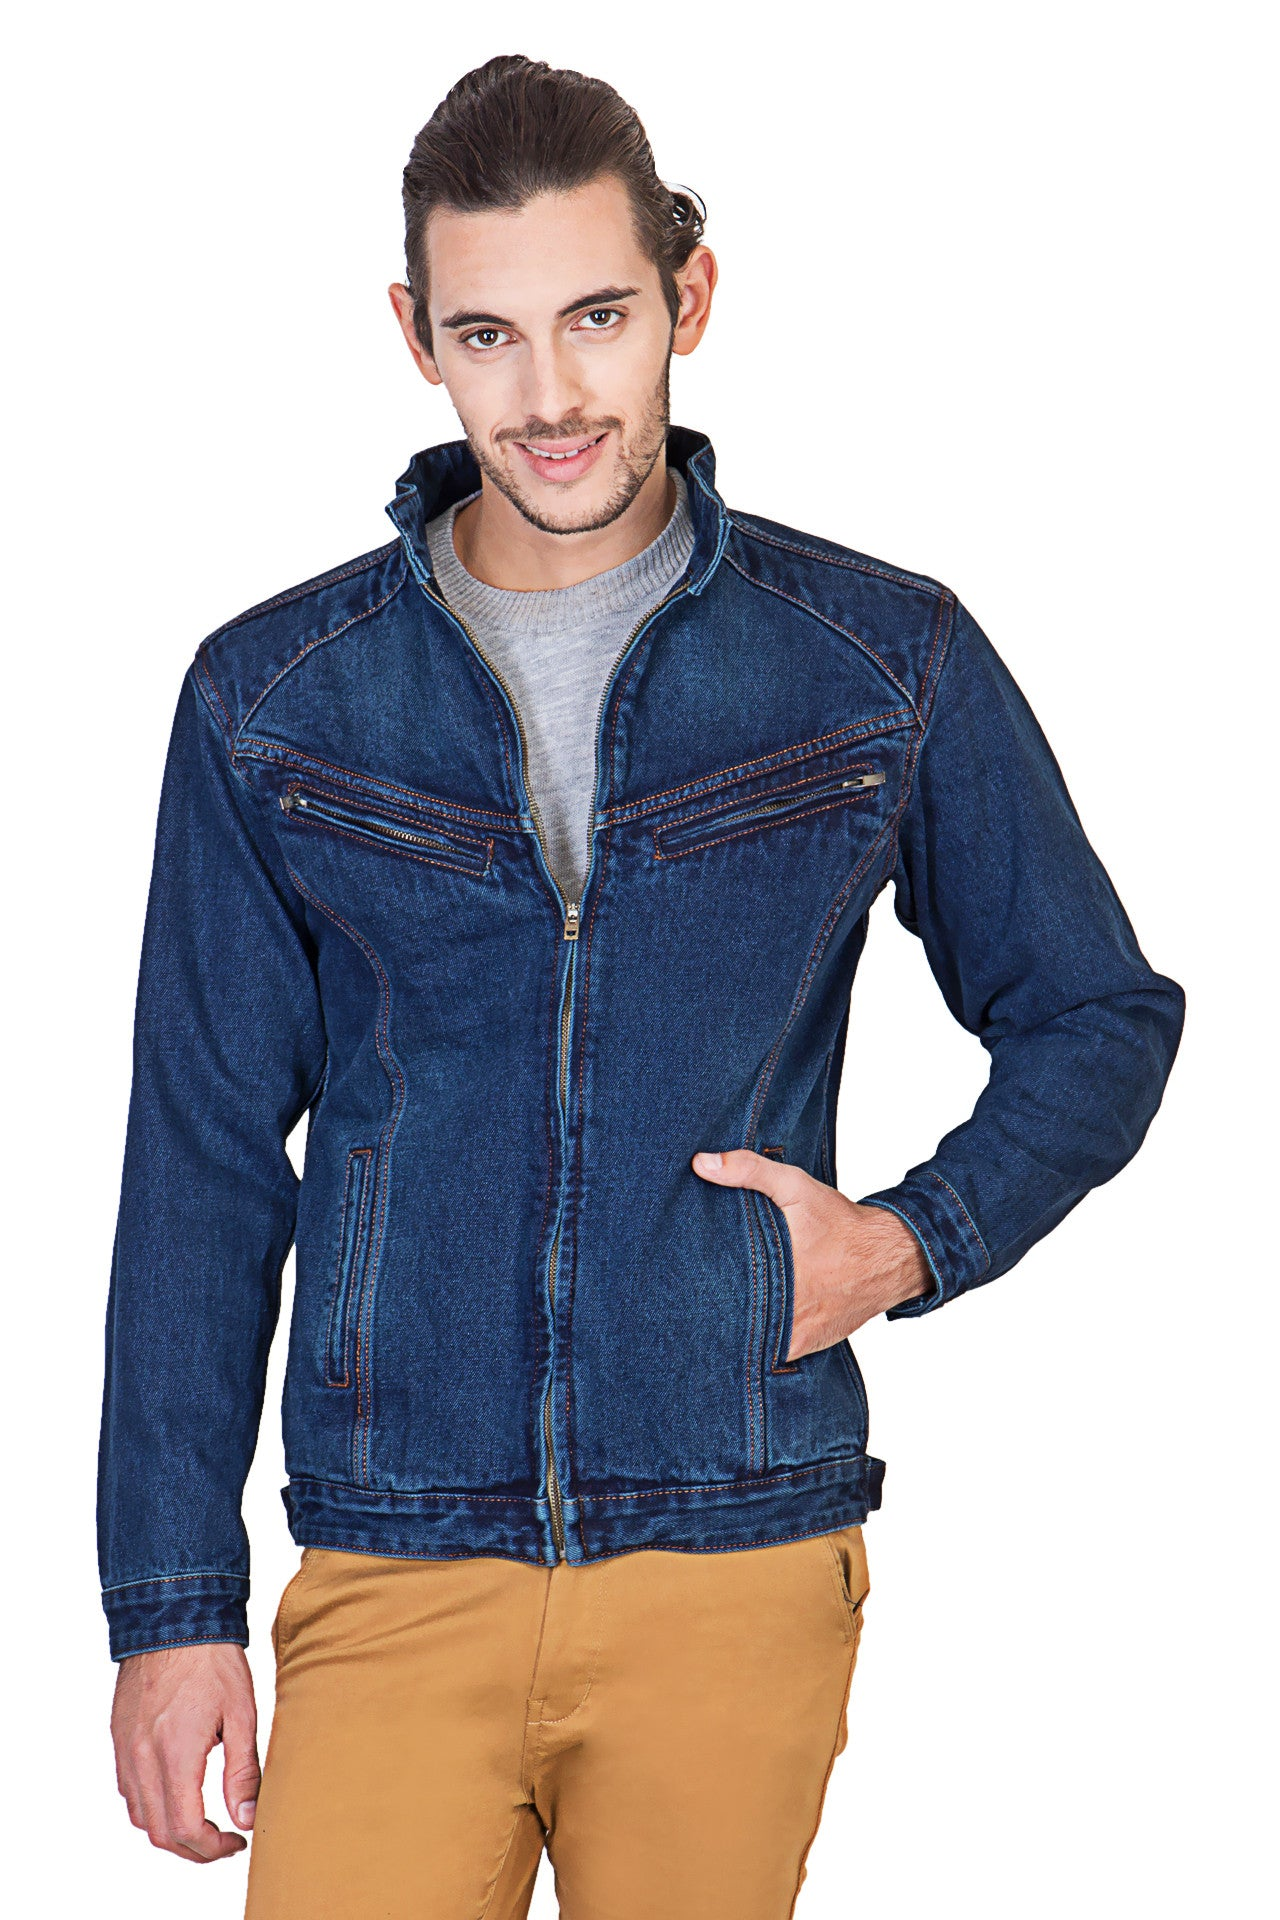 Full Sleeve Blue Men's Denim Jacketwith Zipper